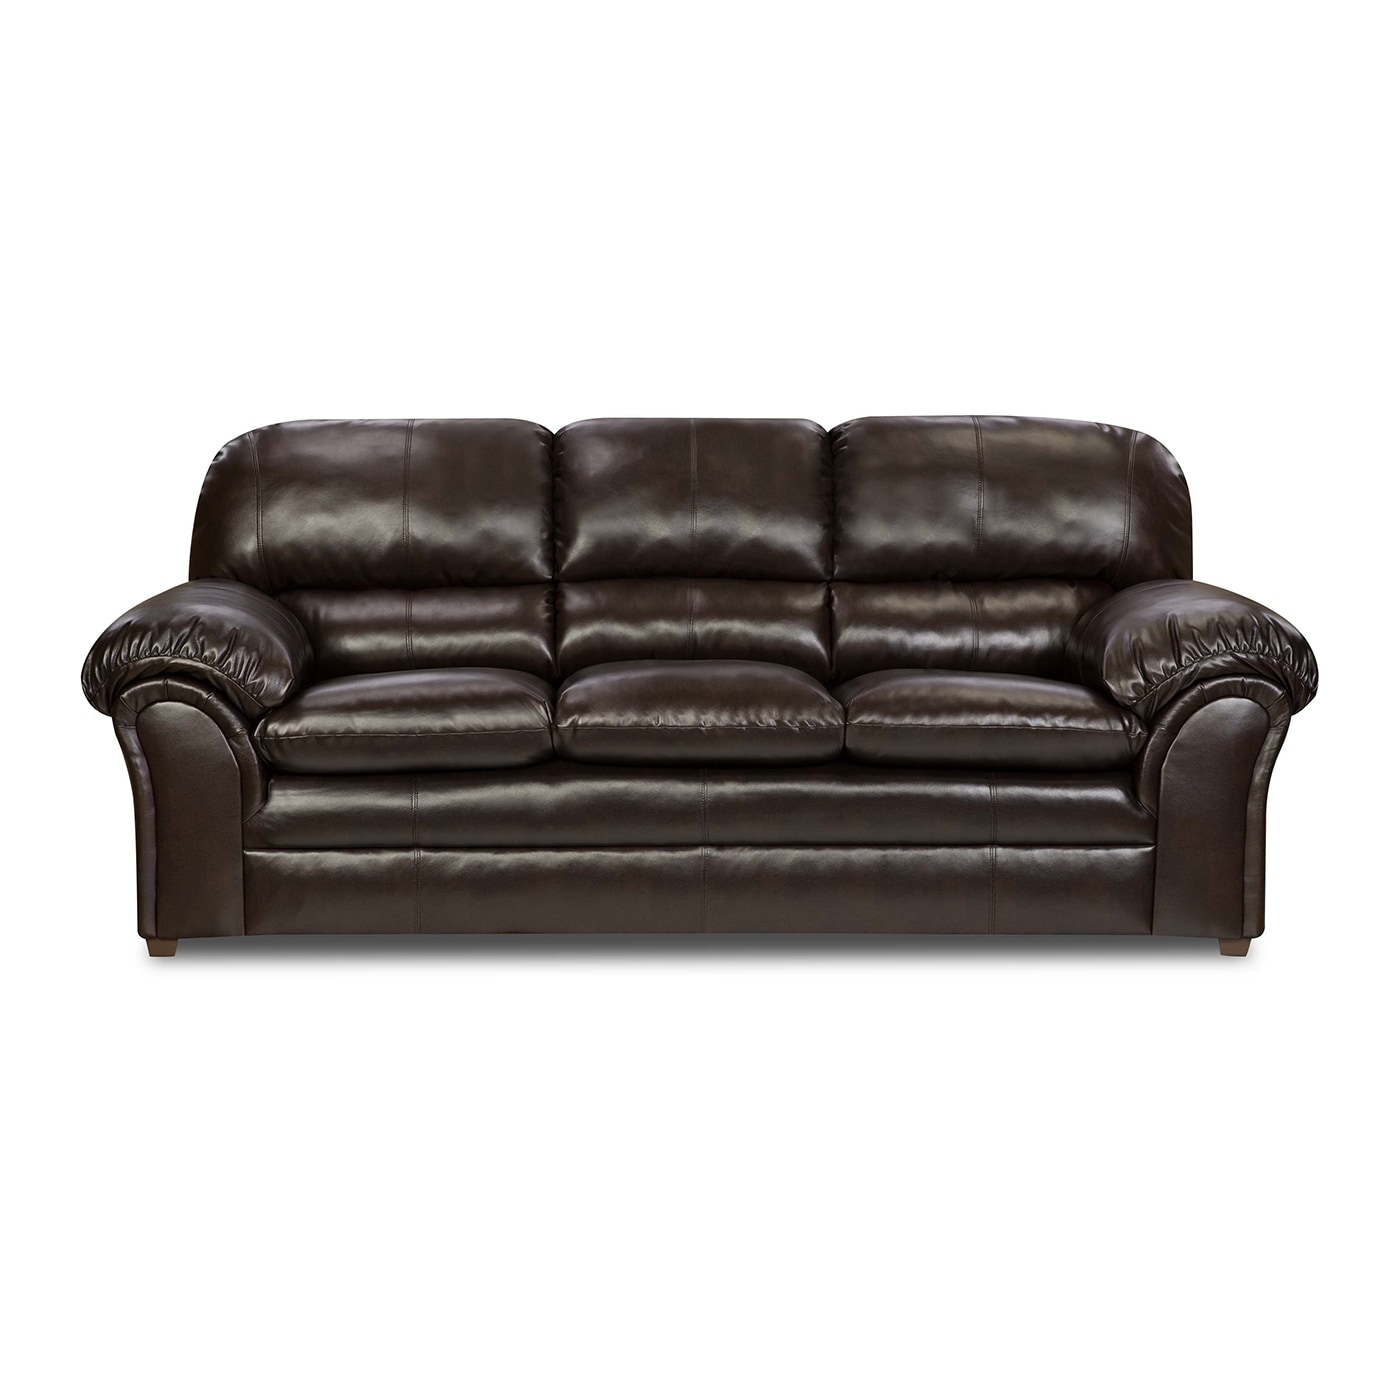 Simmons Upholstery Vintage Riverside Bonded Leather Sofa ...